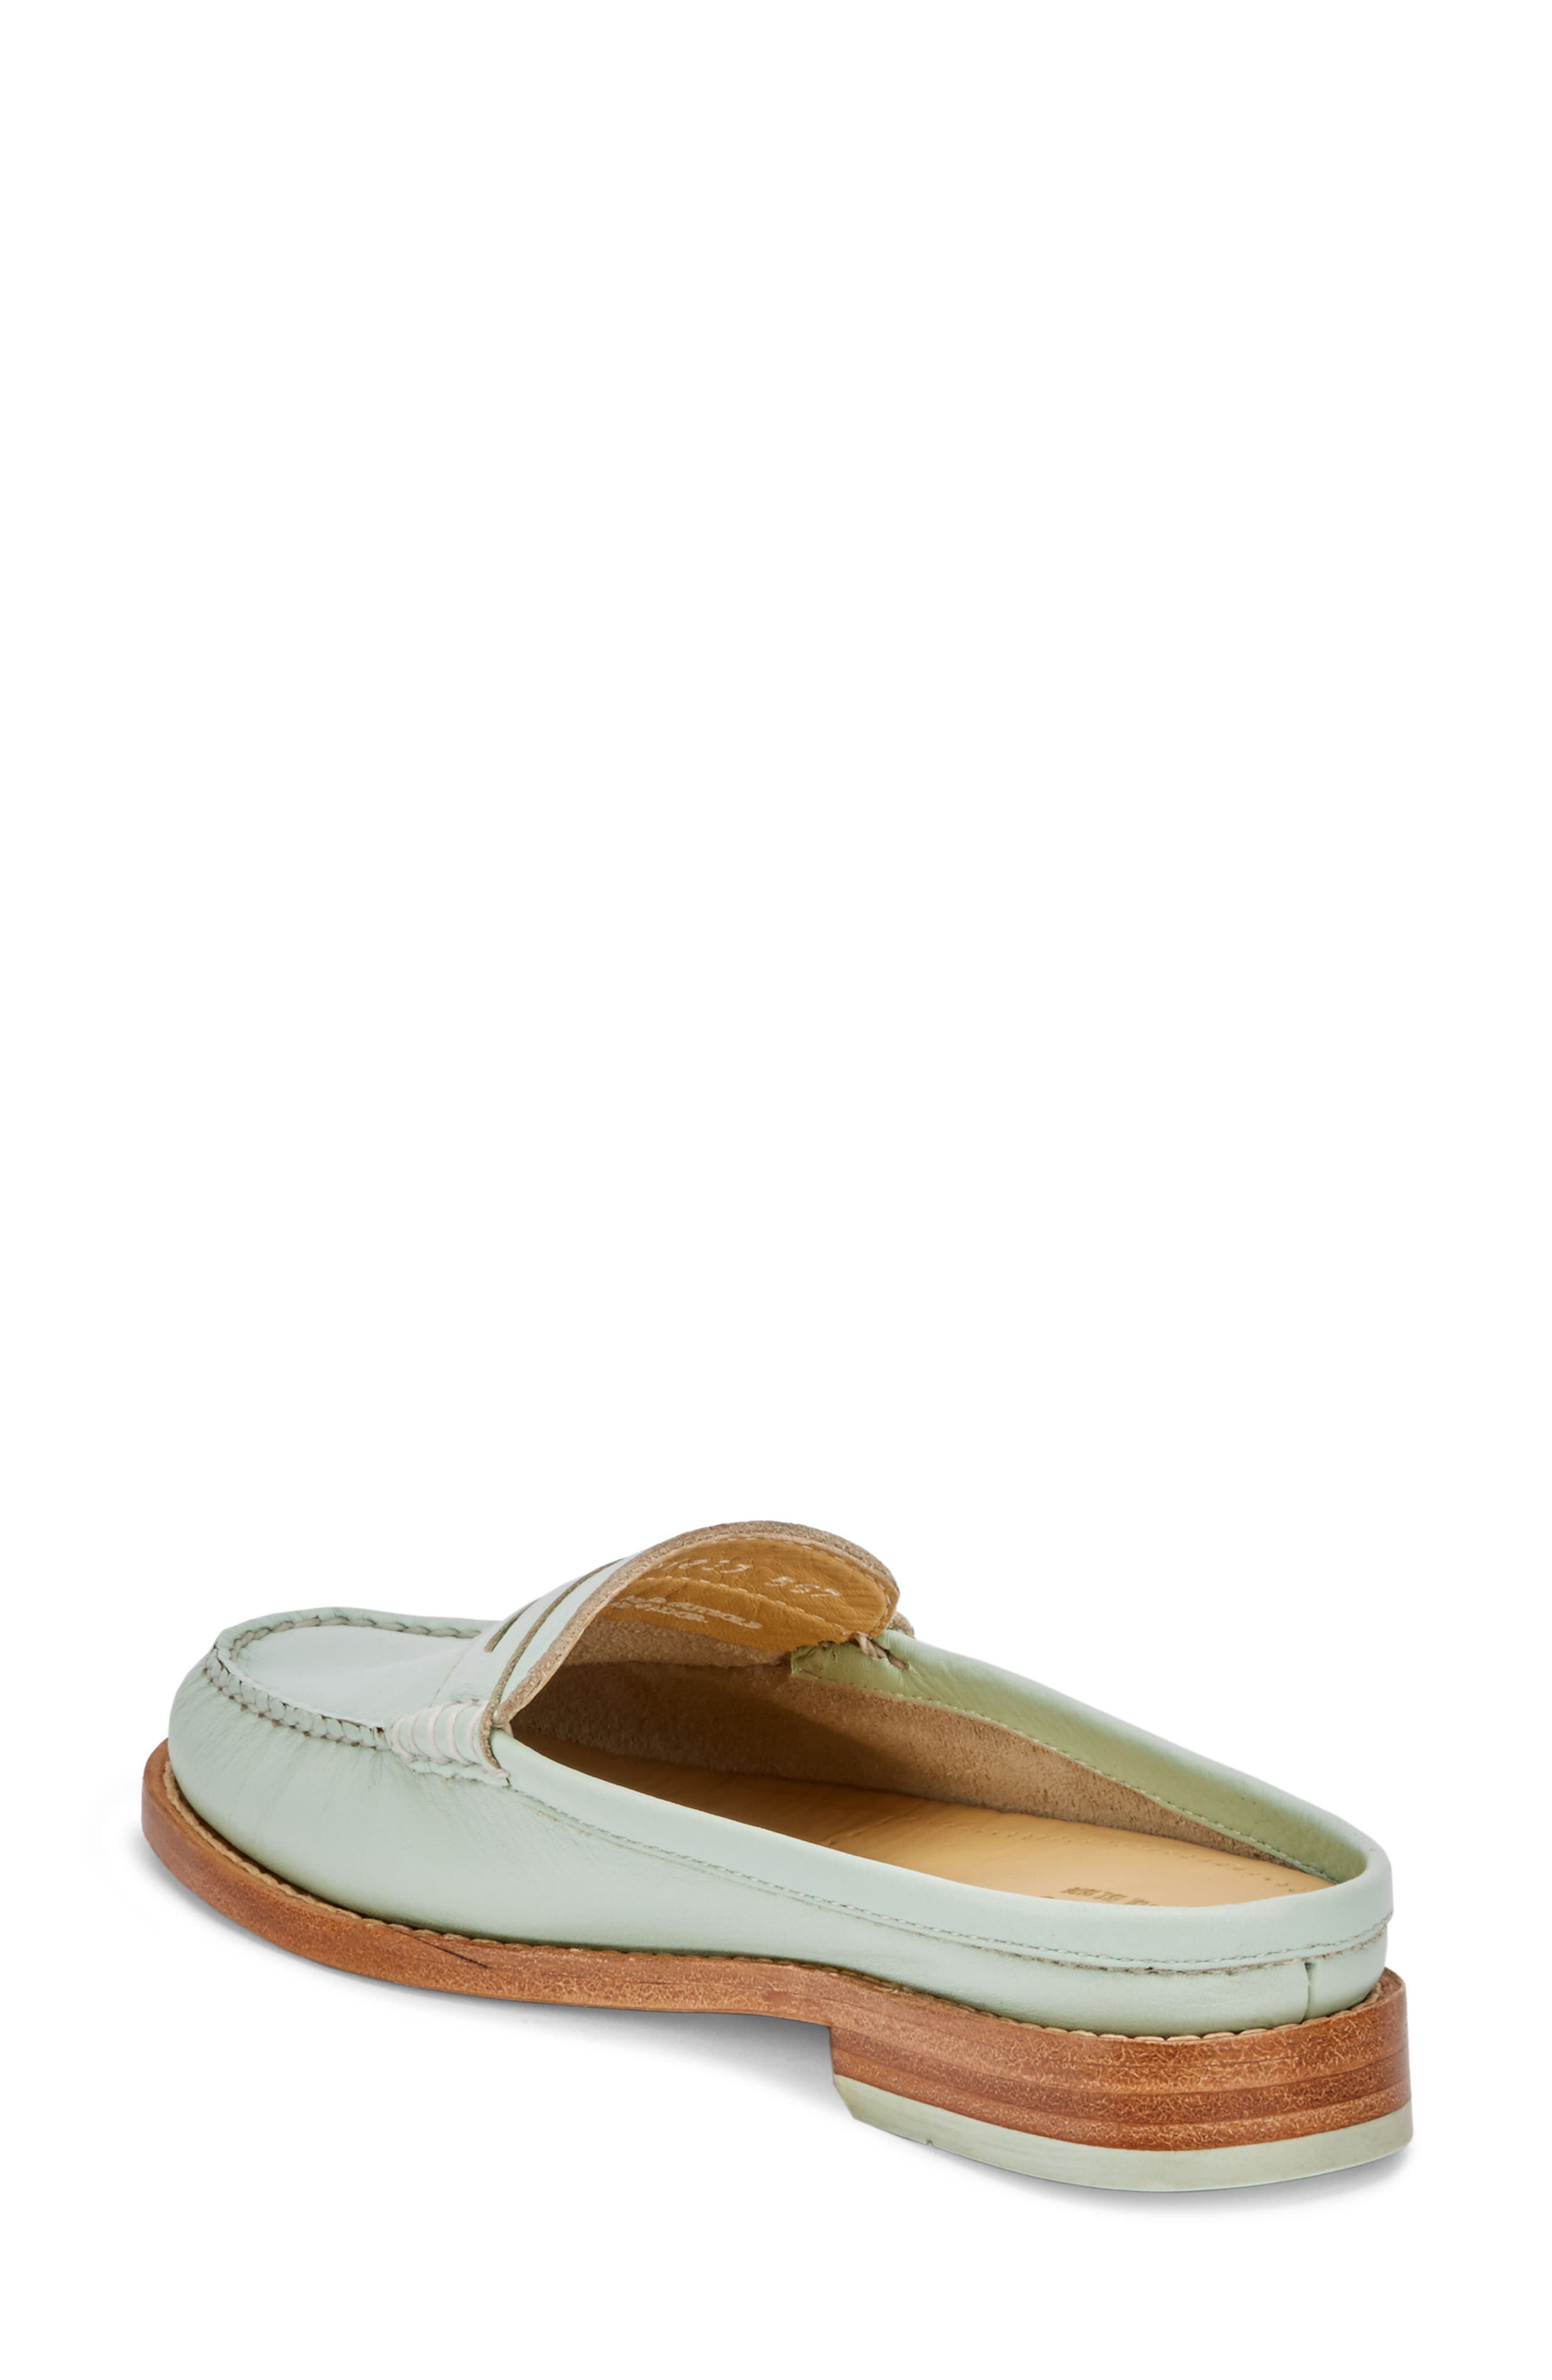 Wynn Loafer Mule,                             Alternate thumbnail 32, color,